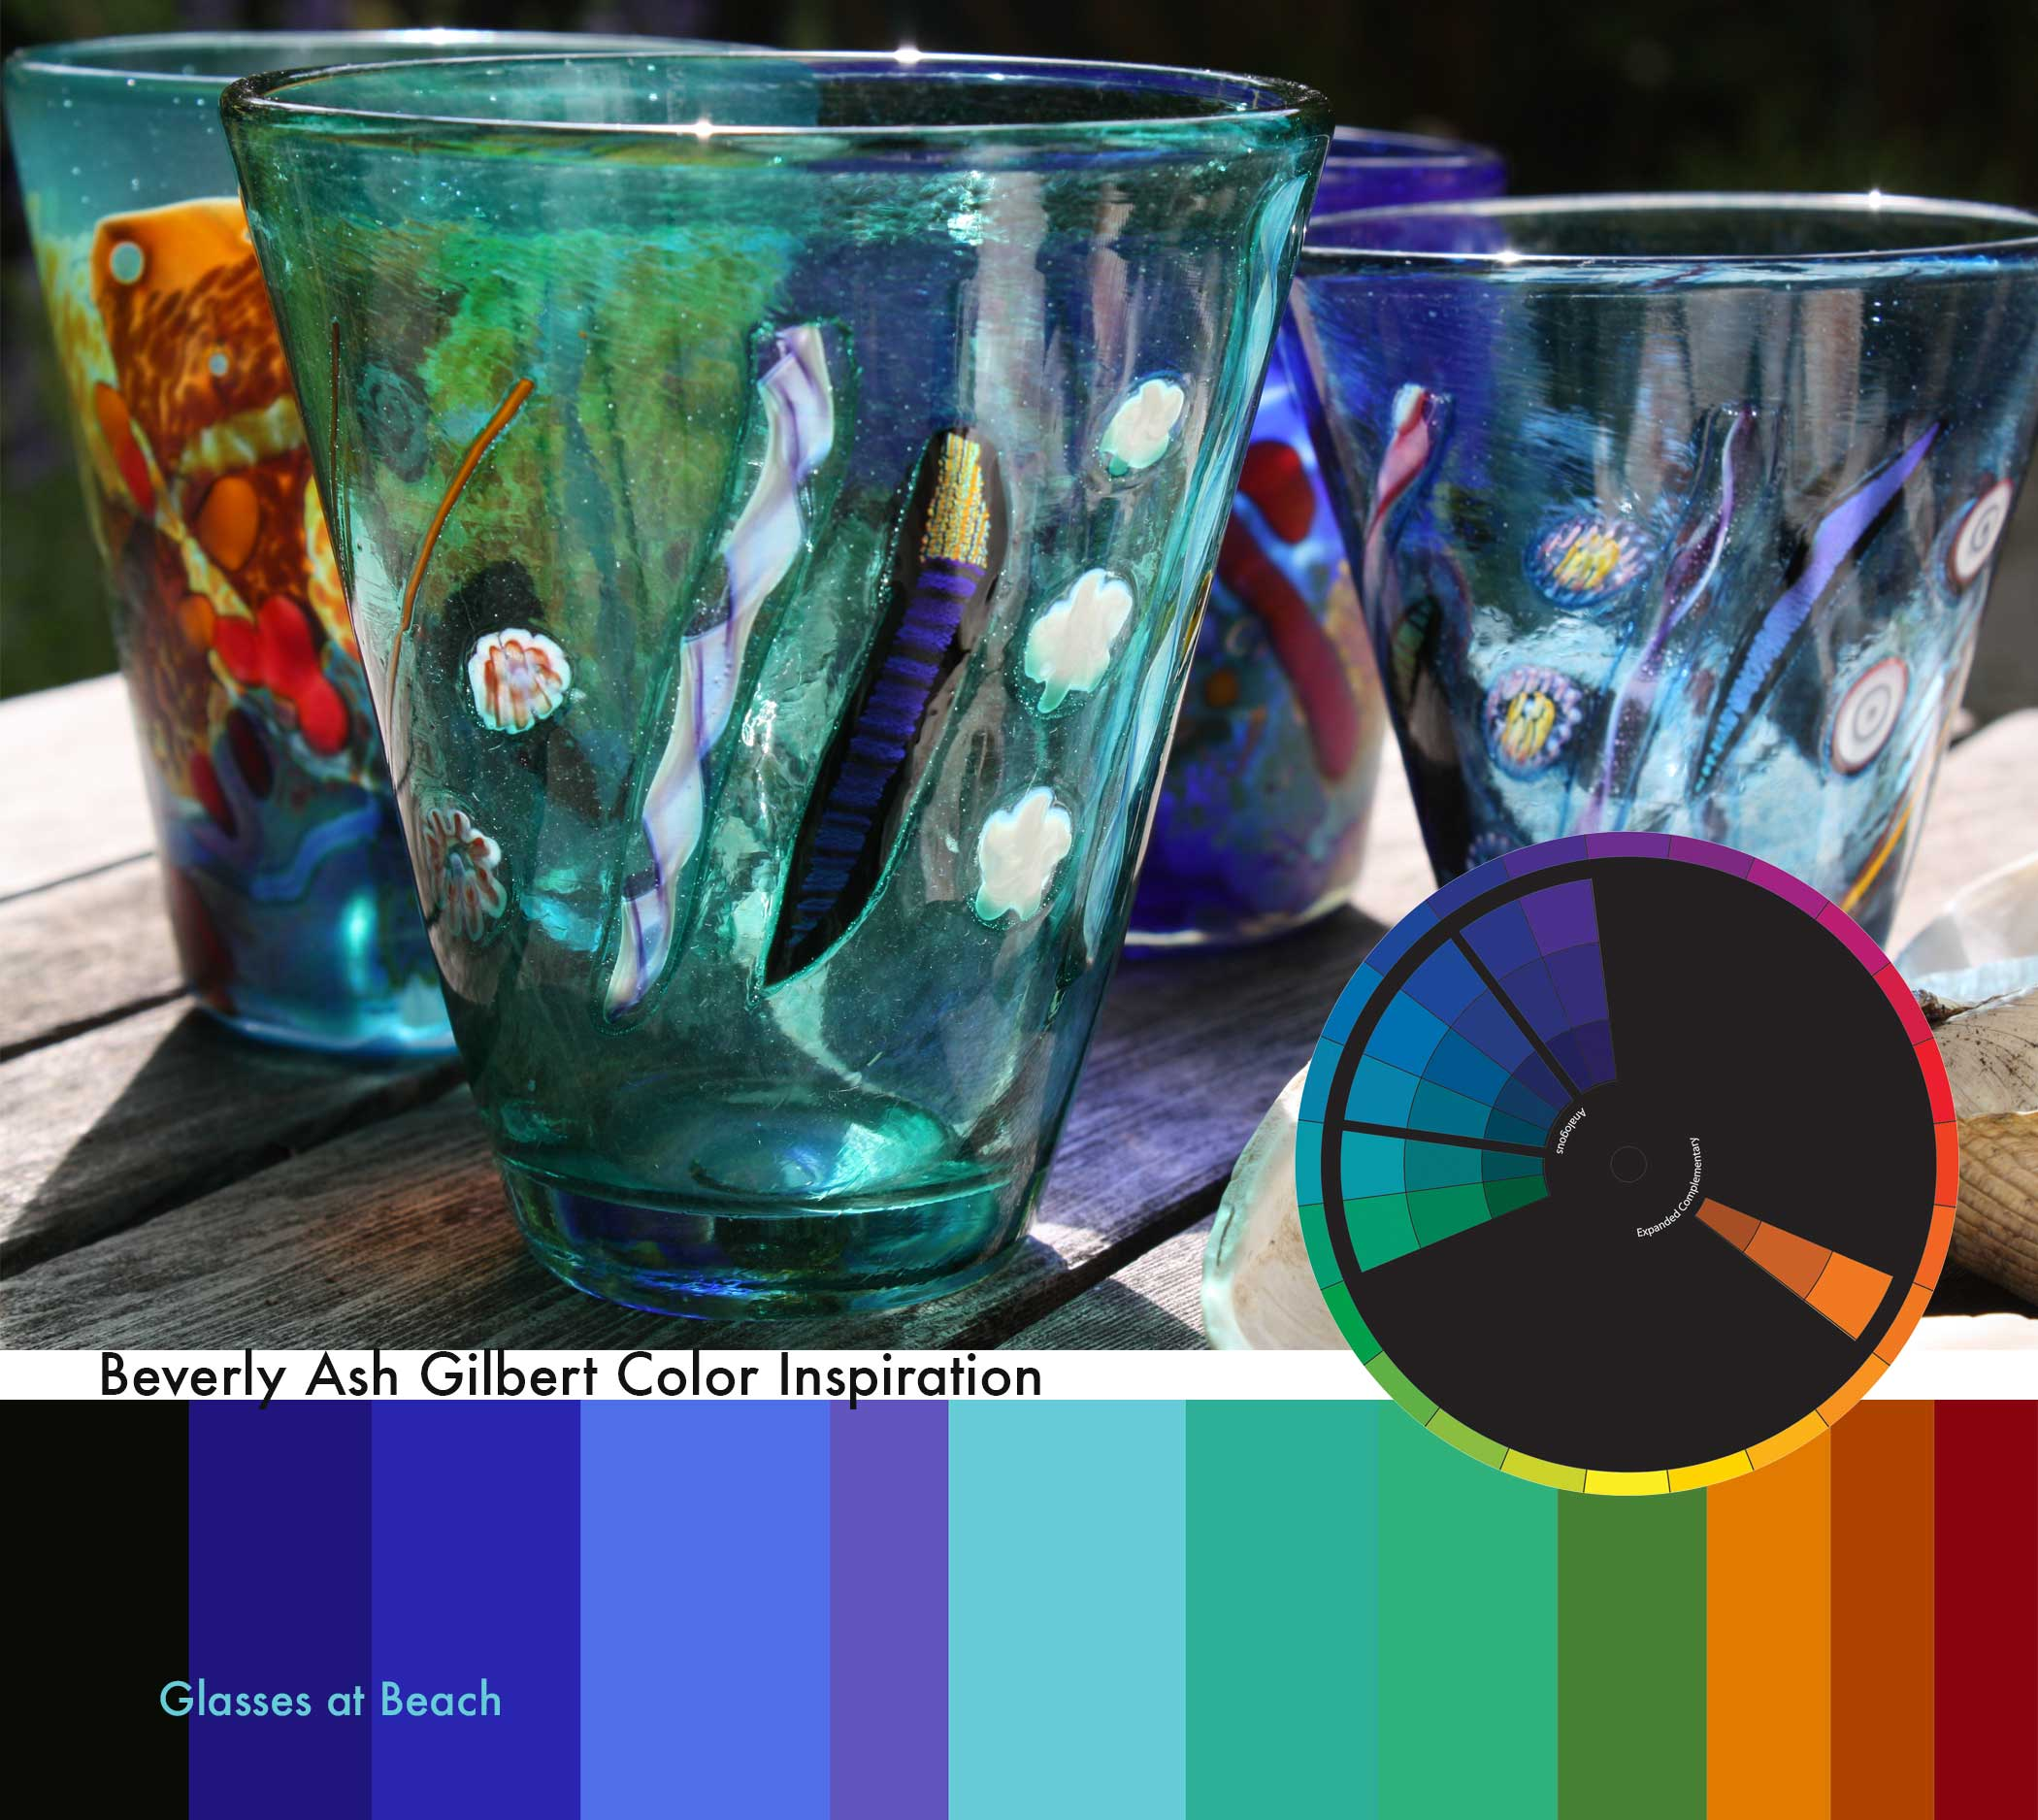 ColorInspiration_GlassesatBeach_small.jpg